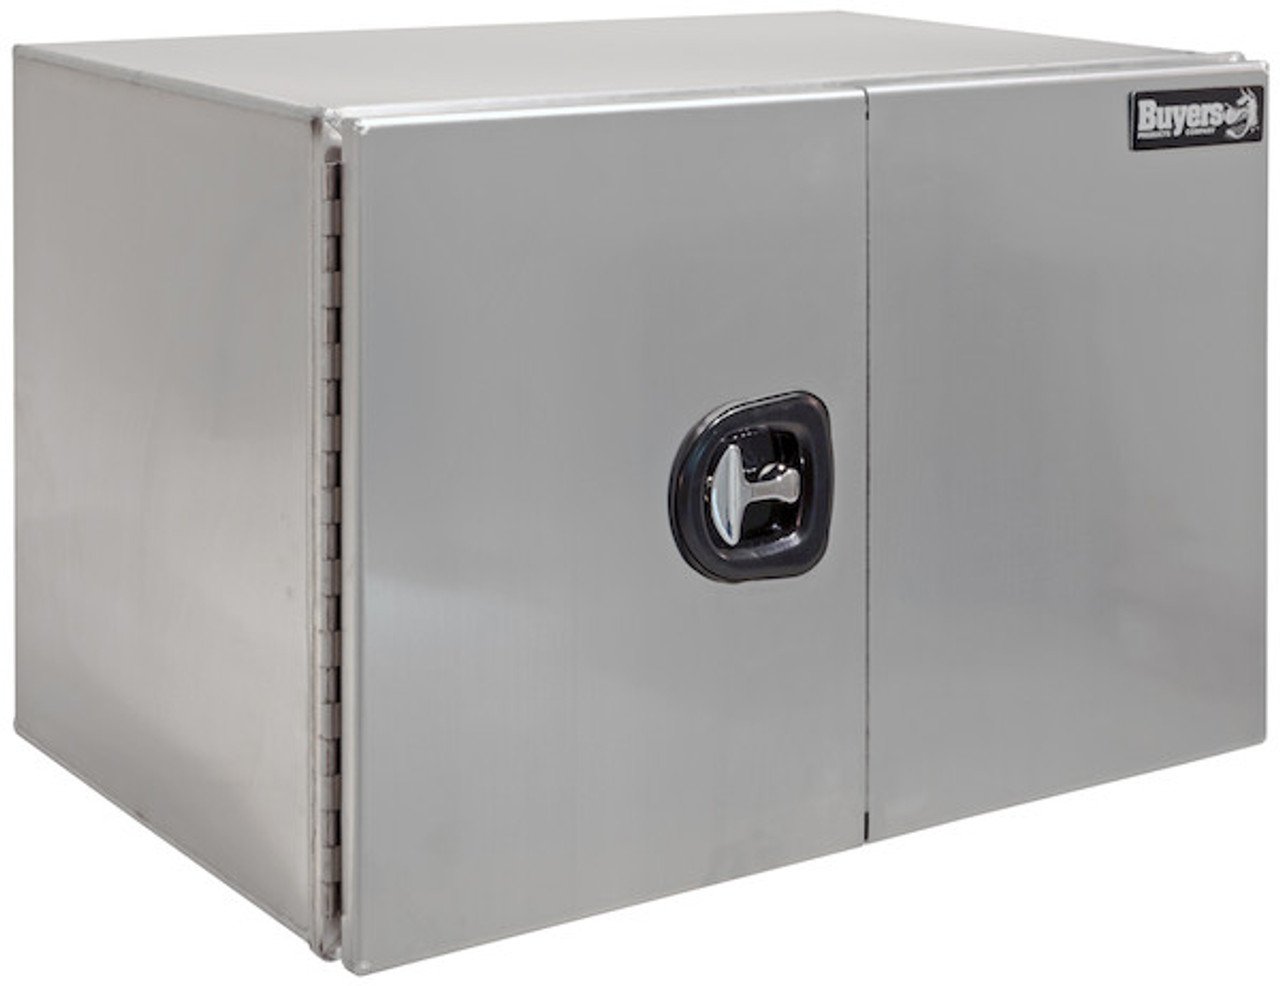 "1705420 BUYERS PRODUCTS XD SMOOTH ALUMINUM UNDERBODY TOOLBOX WITH BARN DOOR 18""HX24""DX36""W"